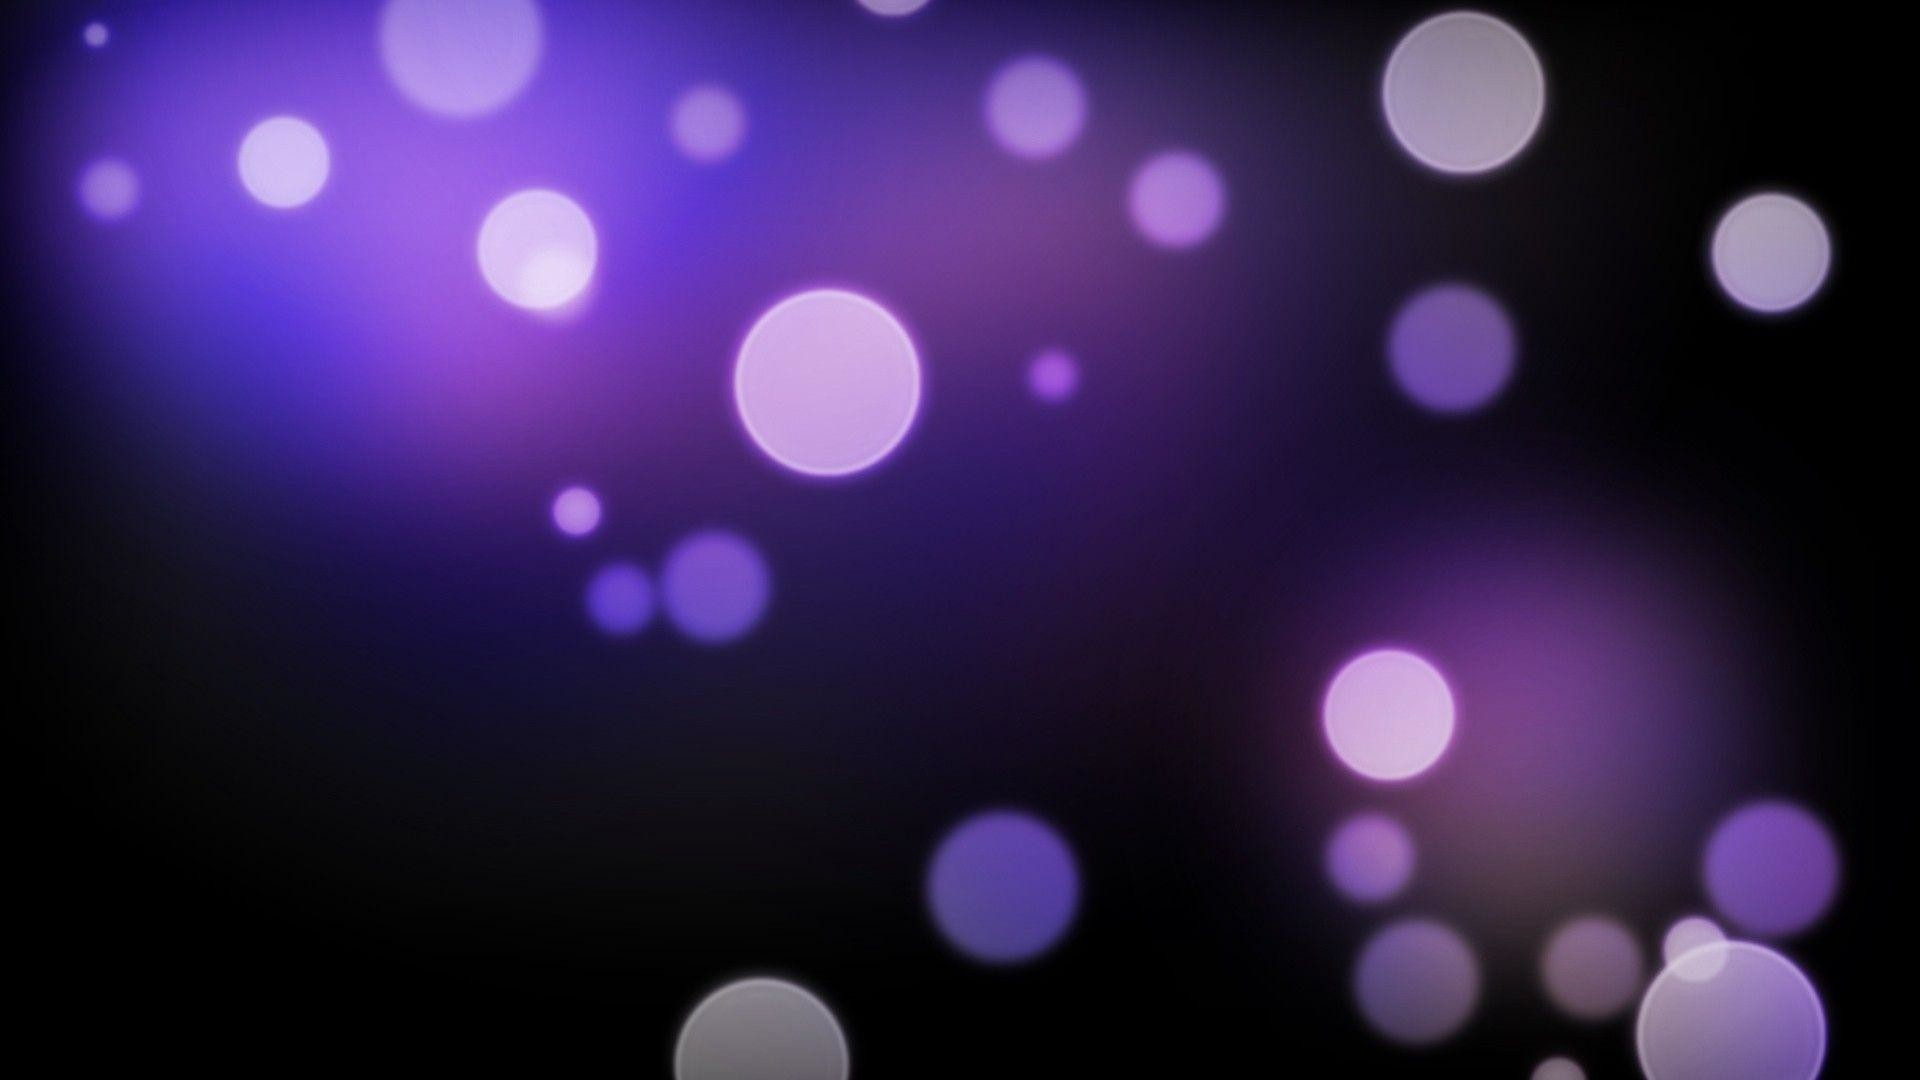 Dark Purple Background, wallpaper, Dark Purple Background hd .